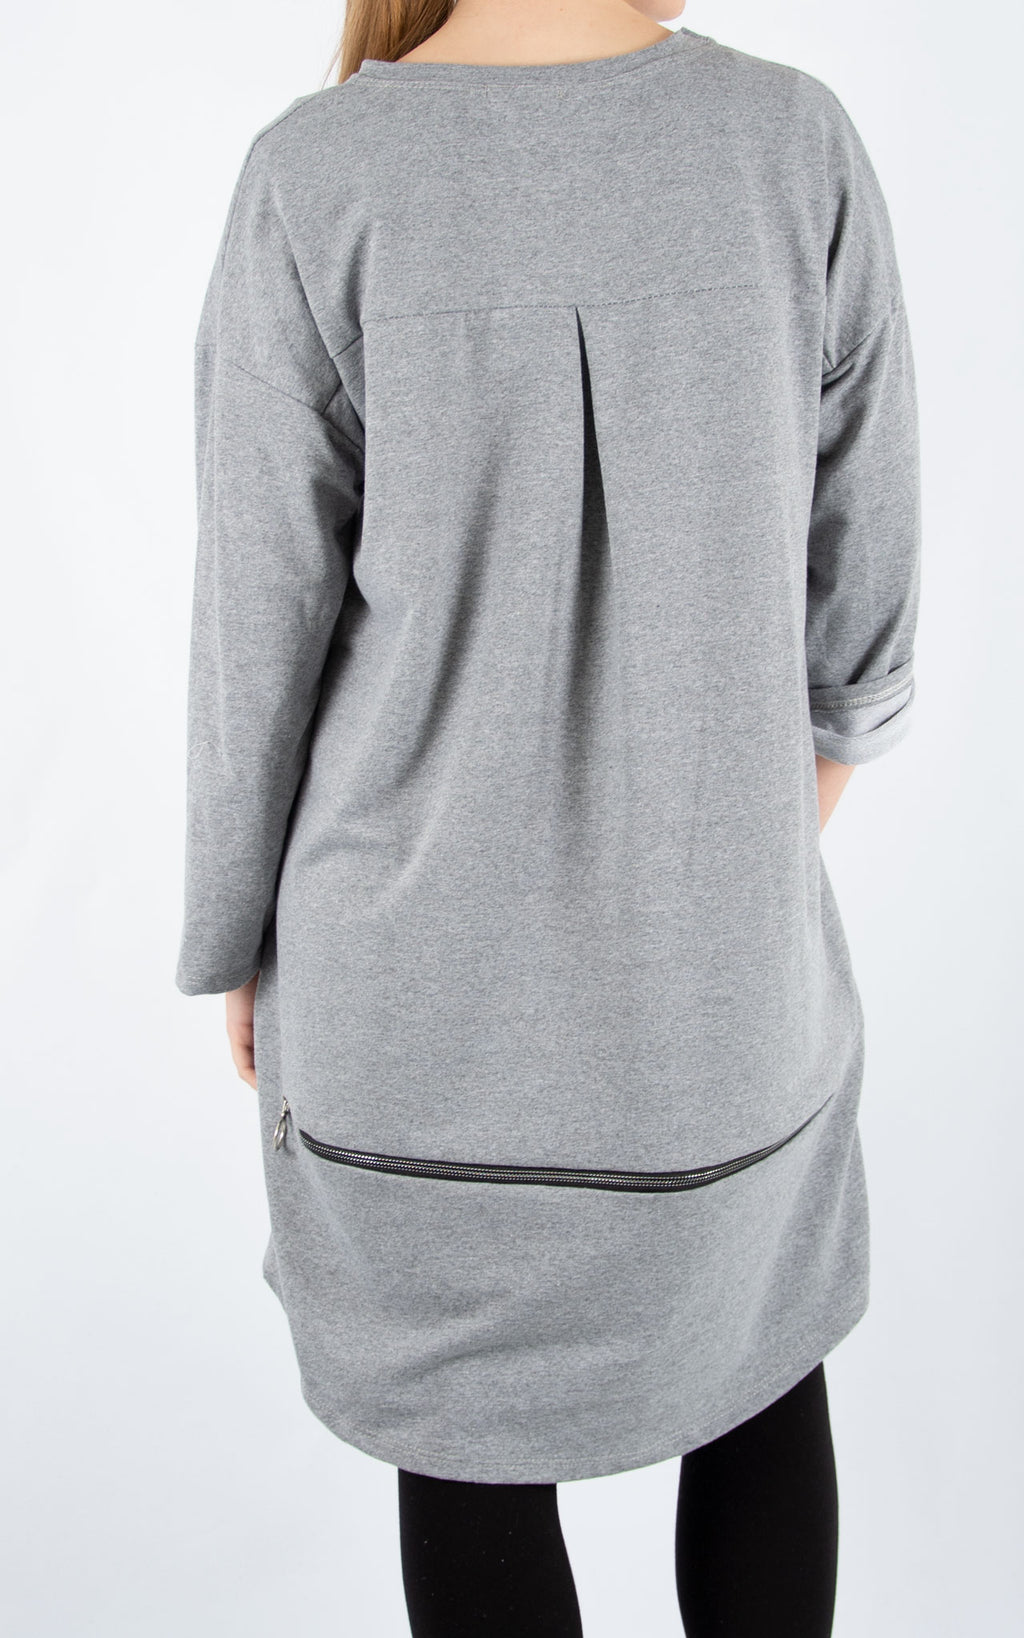 Grey Zippy Sweatshirt